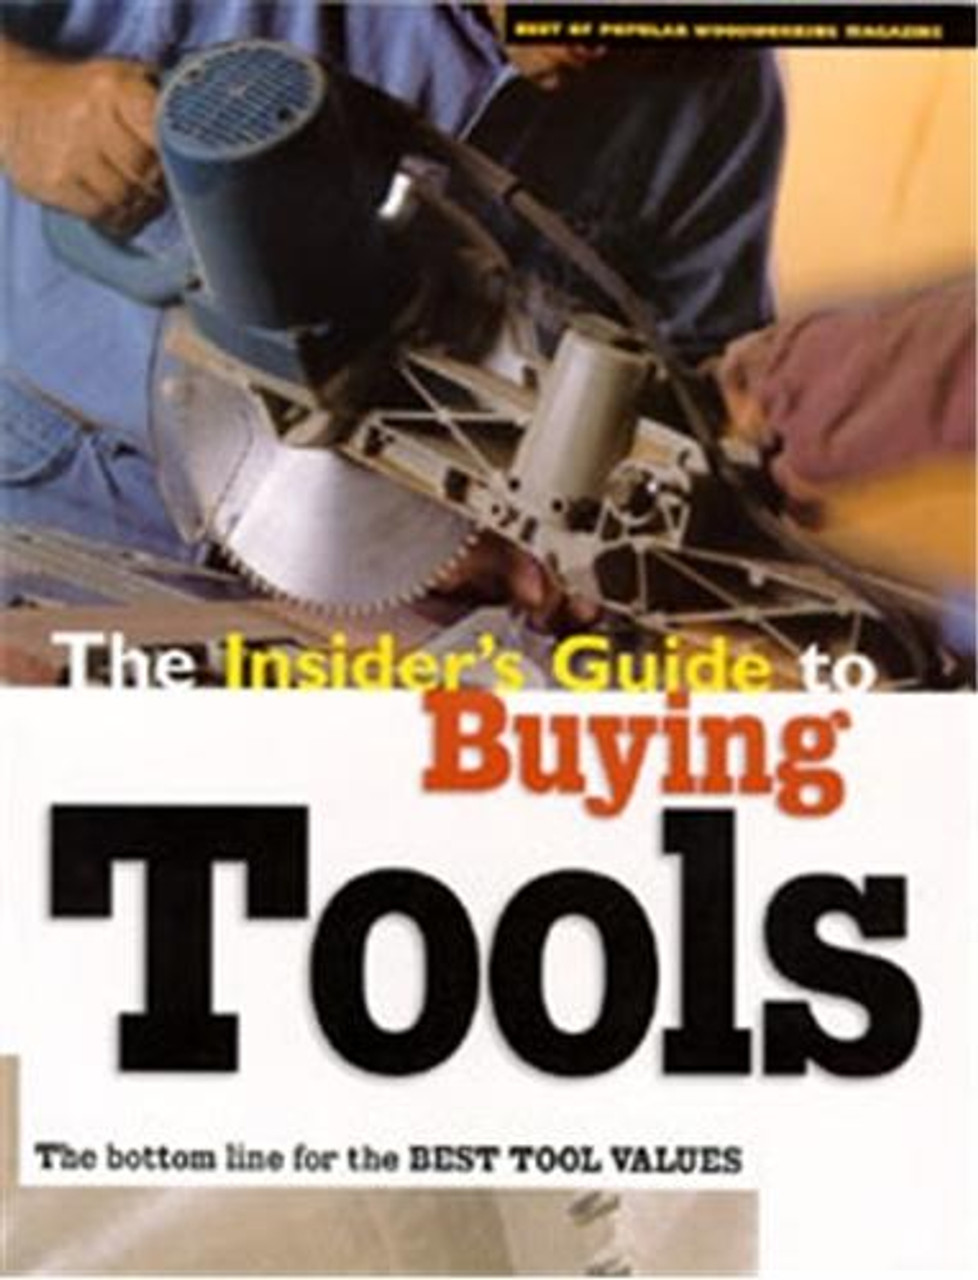 Cherry Tree Toys Insiders Guide to Buying Tools